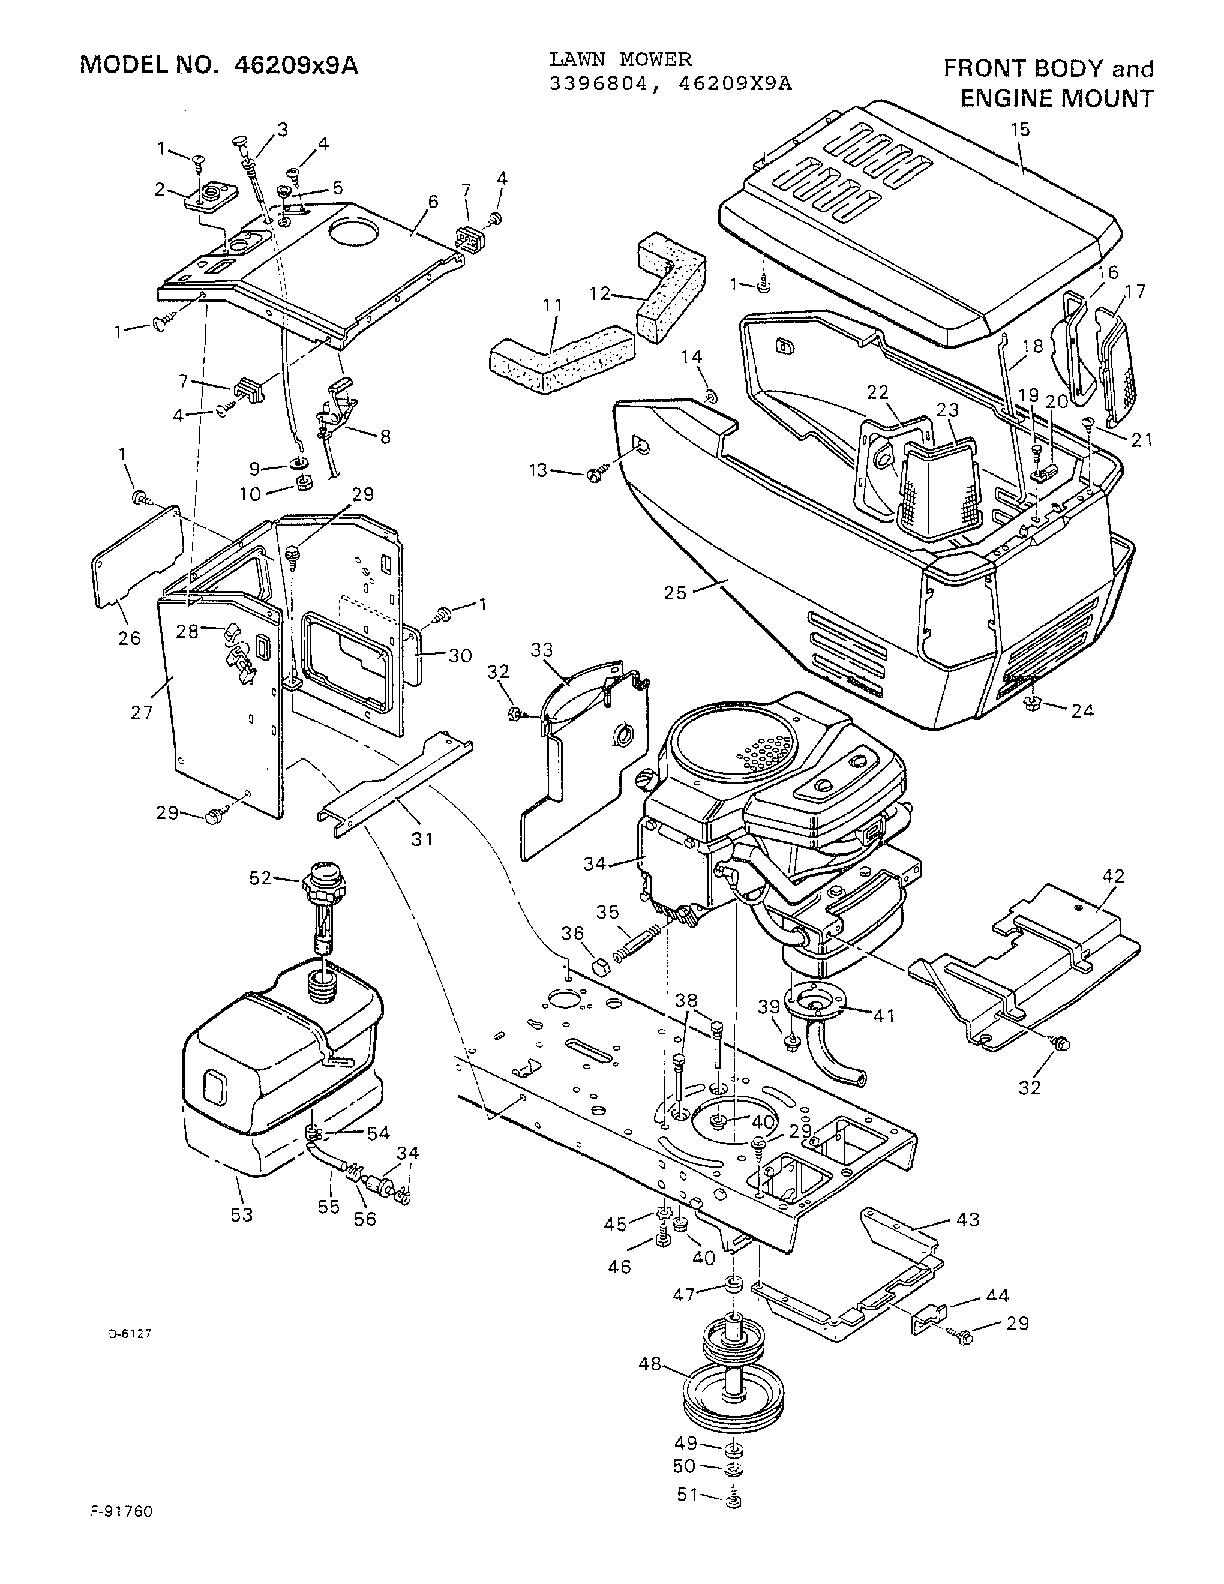 FRONT BODY/ENGINE MOUNT Diagram & Parts List for Model